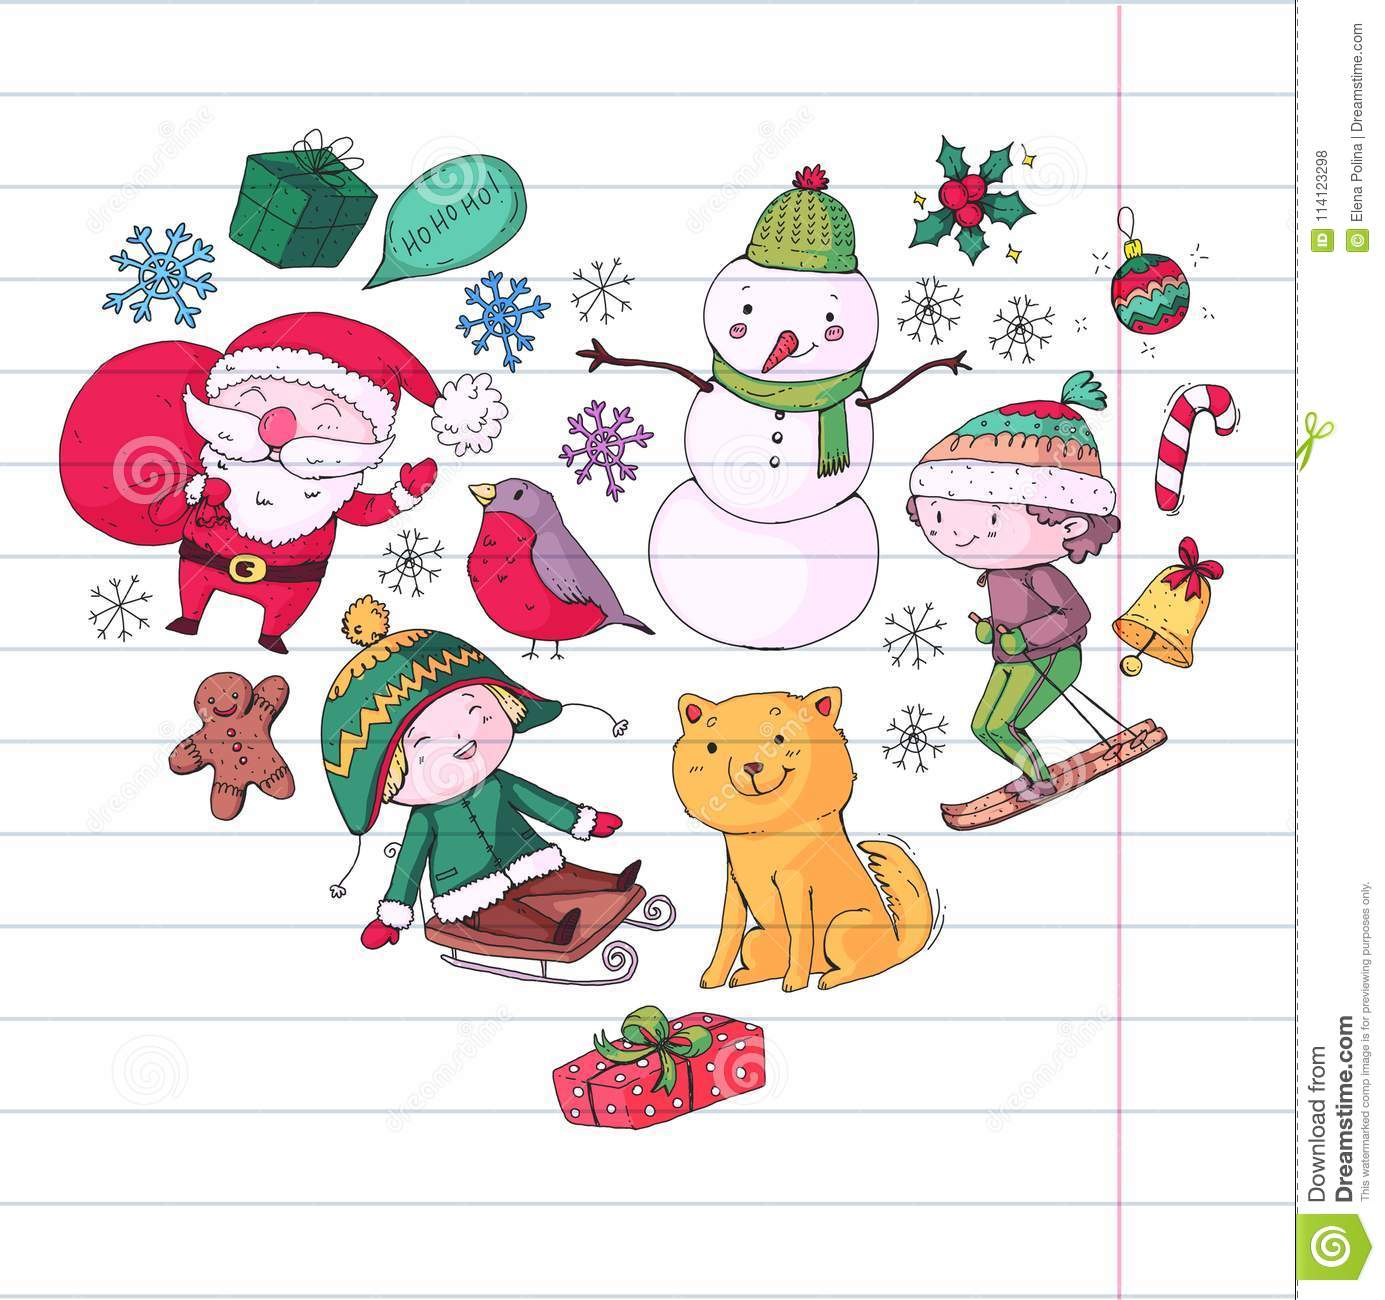 Merry Christmas Celebration With Children Kids Drawing Illustration